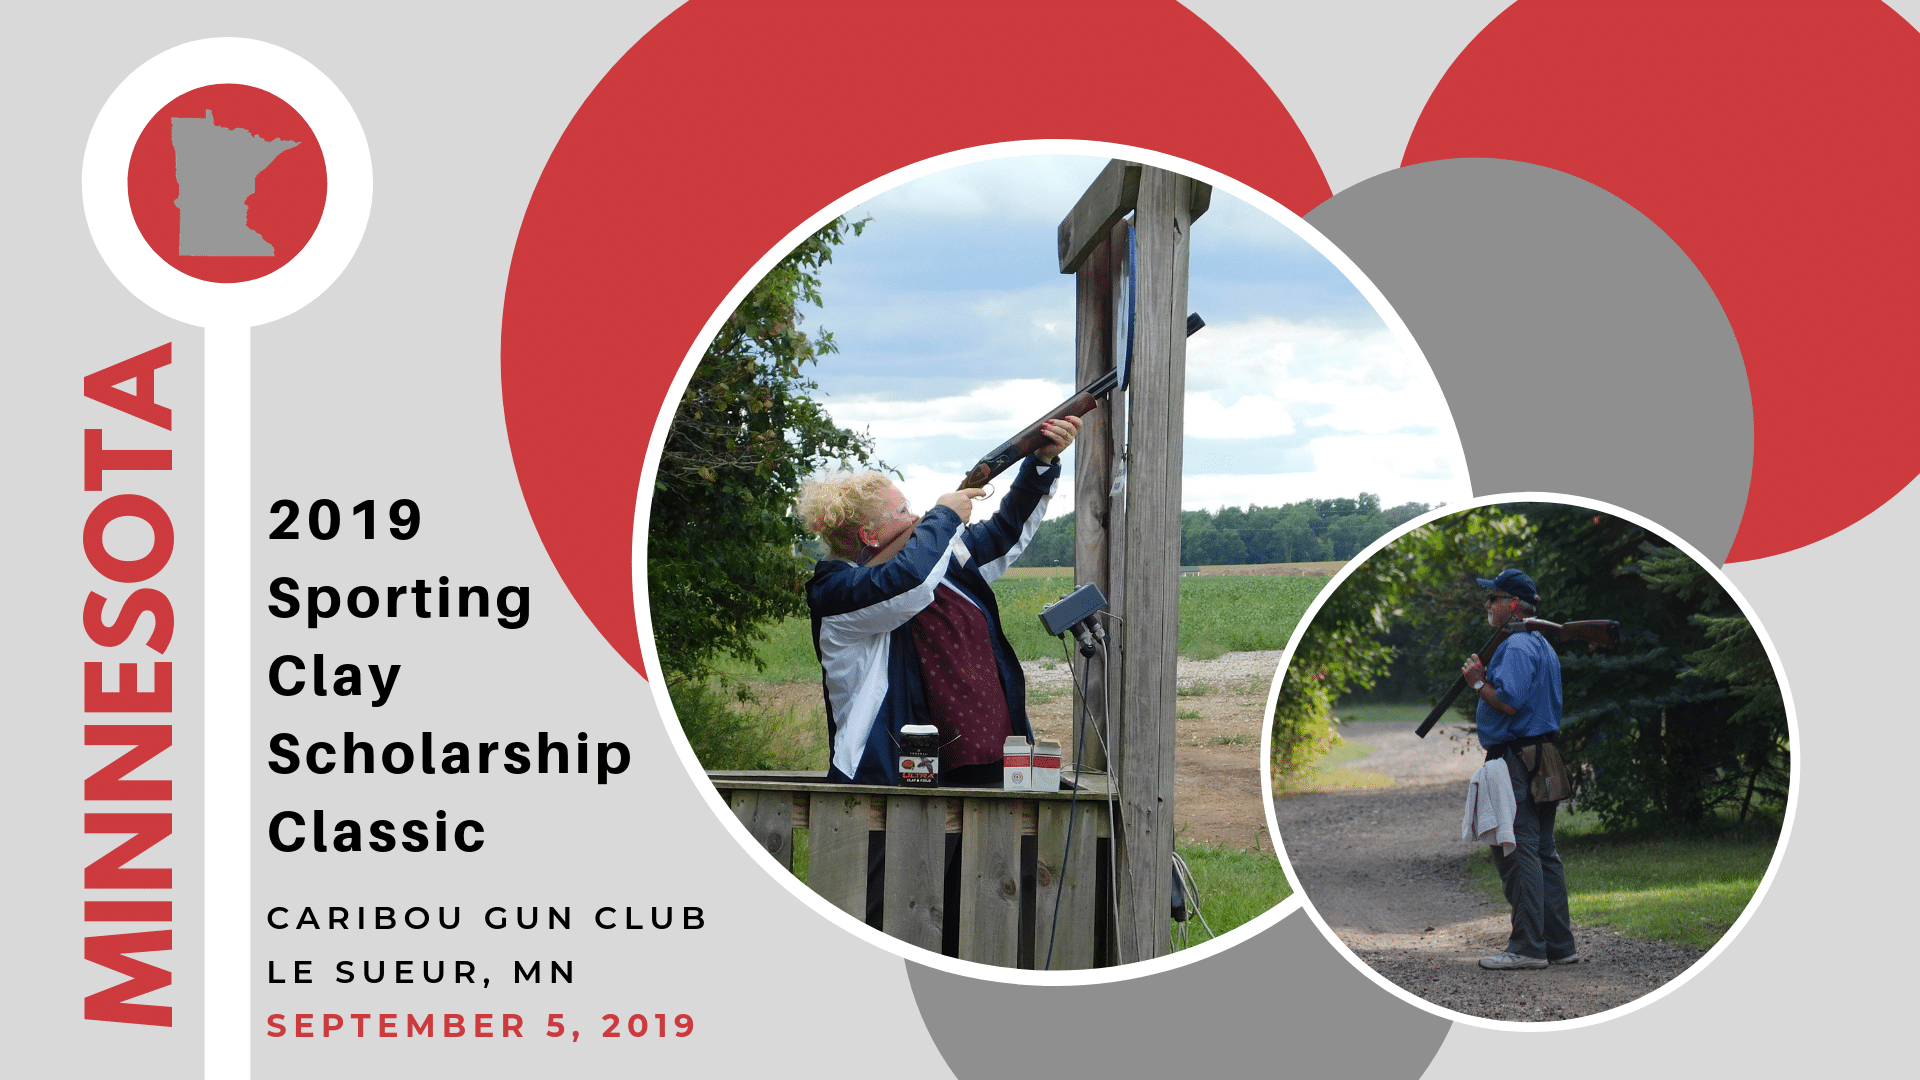 2019 Minnesota Sporting Clay Scholarship Classic